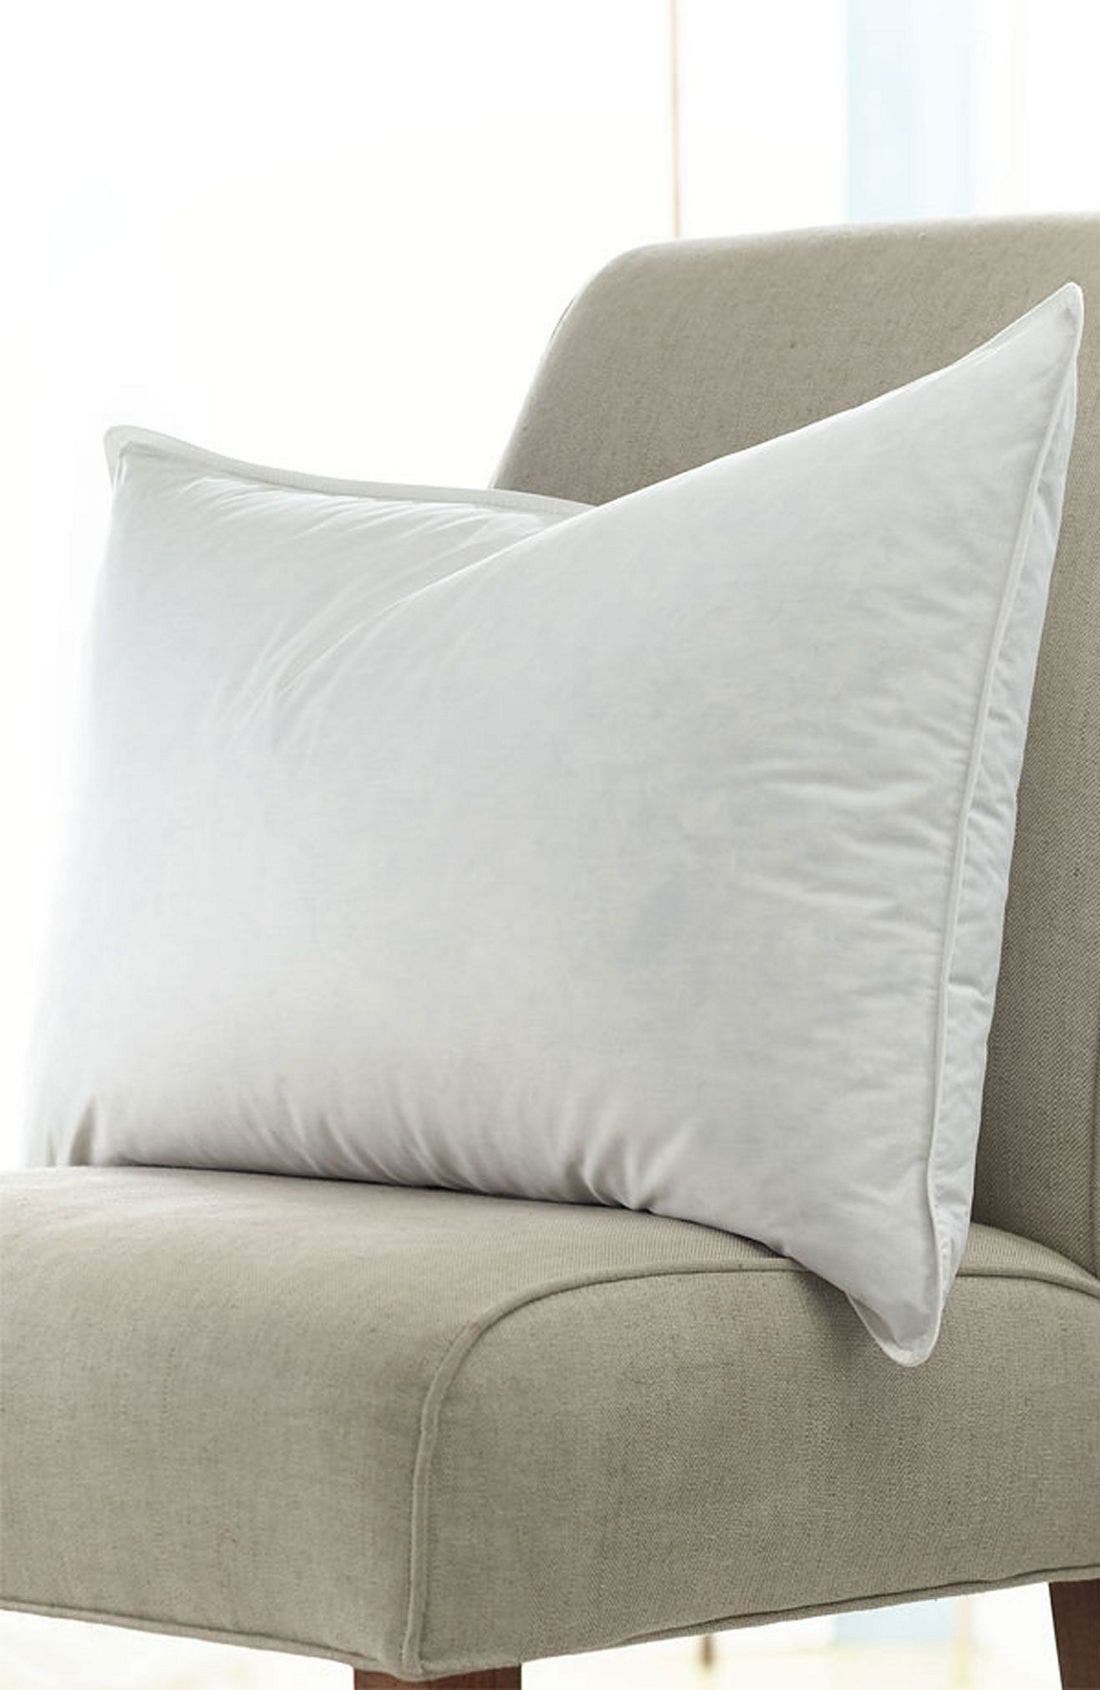 'Home Collection' Hypoallergenic Pillow,                             Alternate thumbnail 2, color,                             White